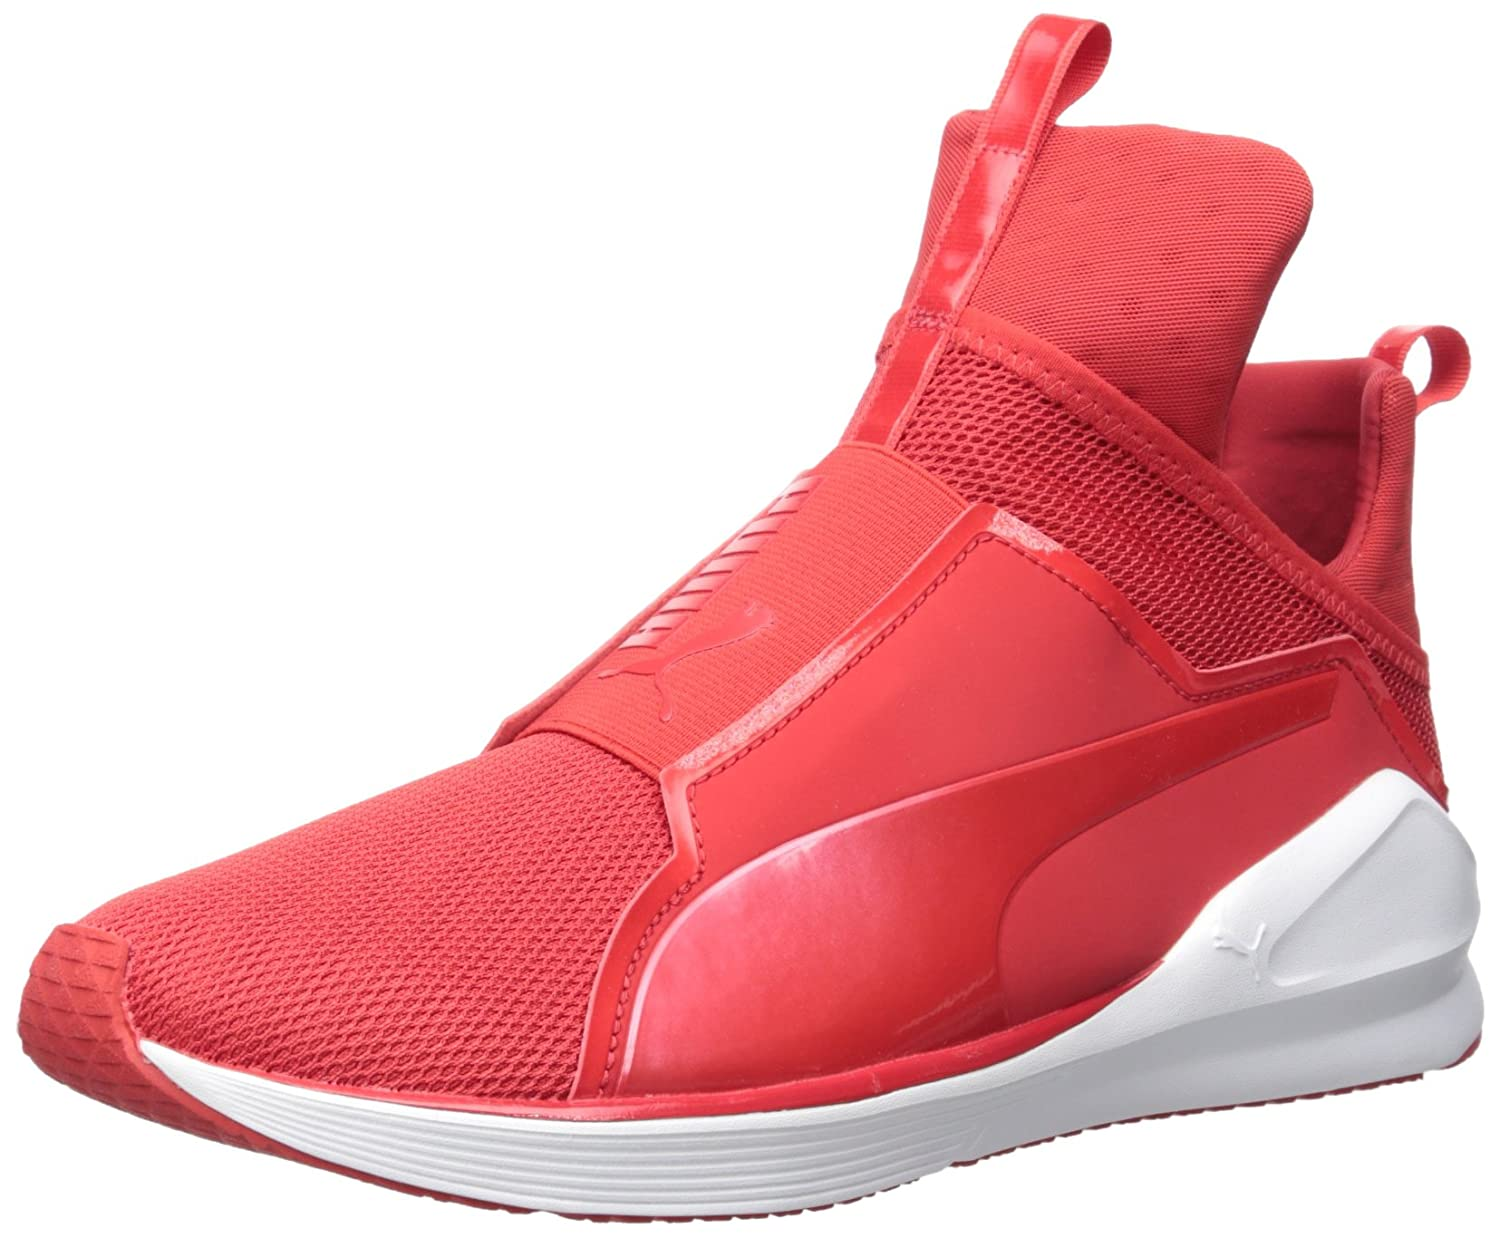 PUMA Women s Fierce Core Cross-Trainer Shoe Risk B01BOUGLZC 10 M US ... 6ebce37cc